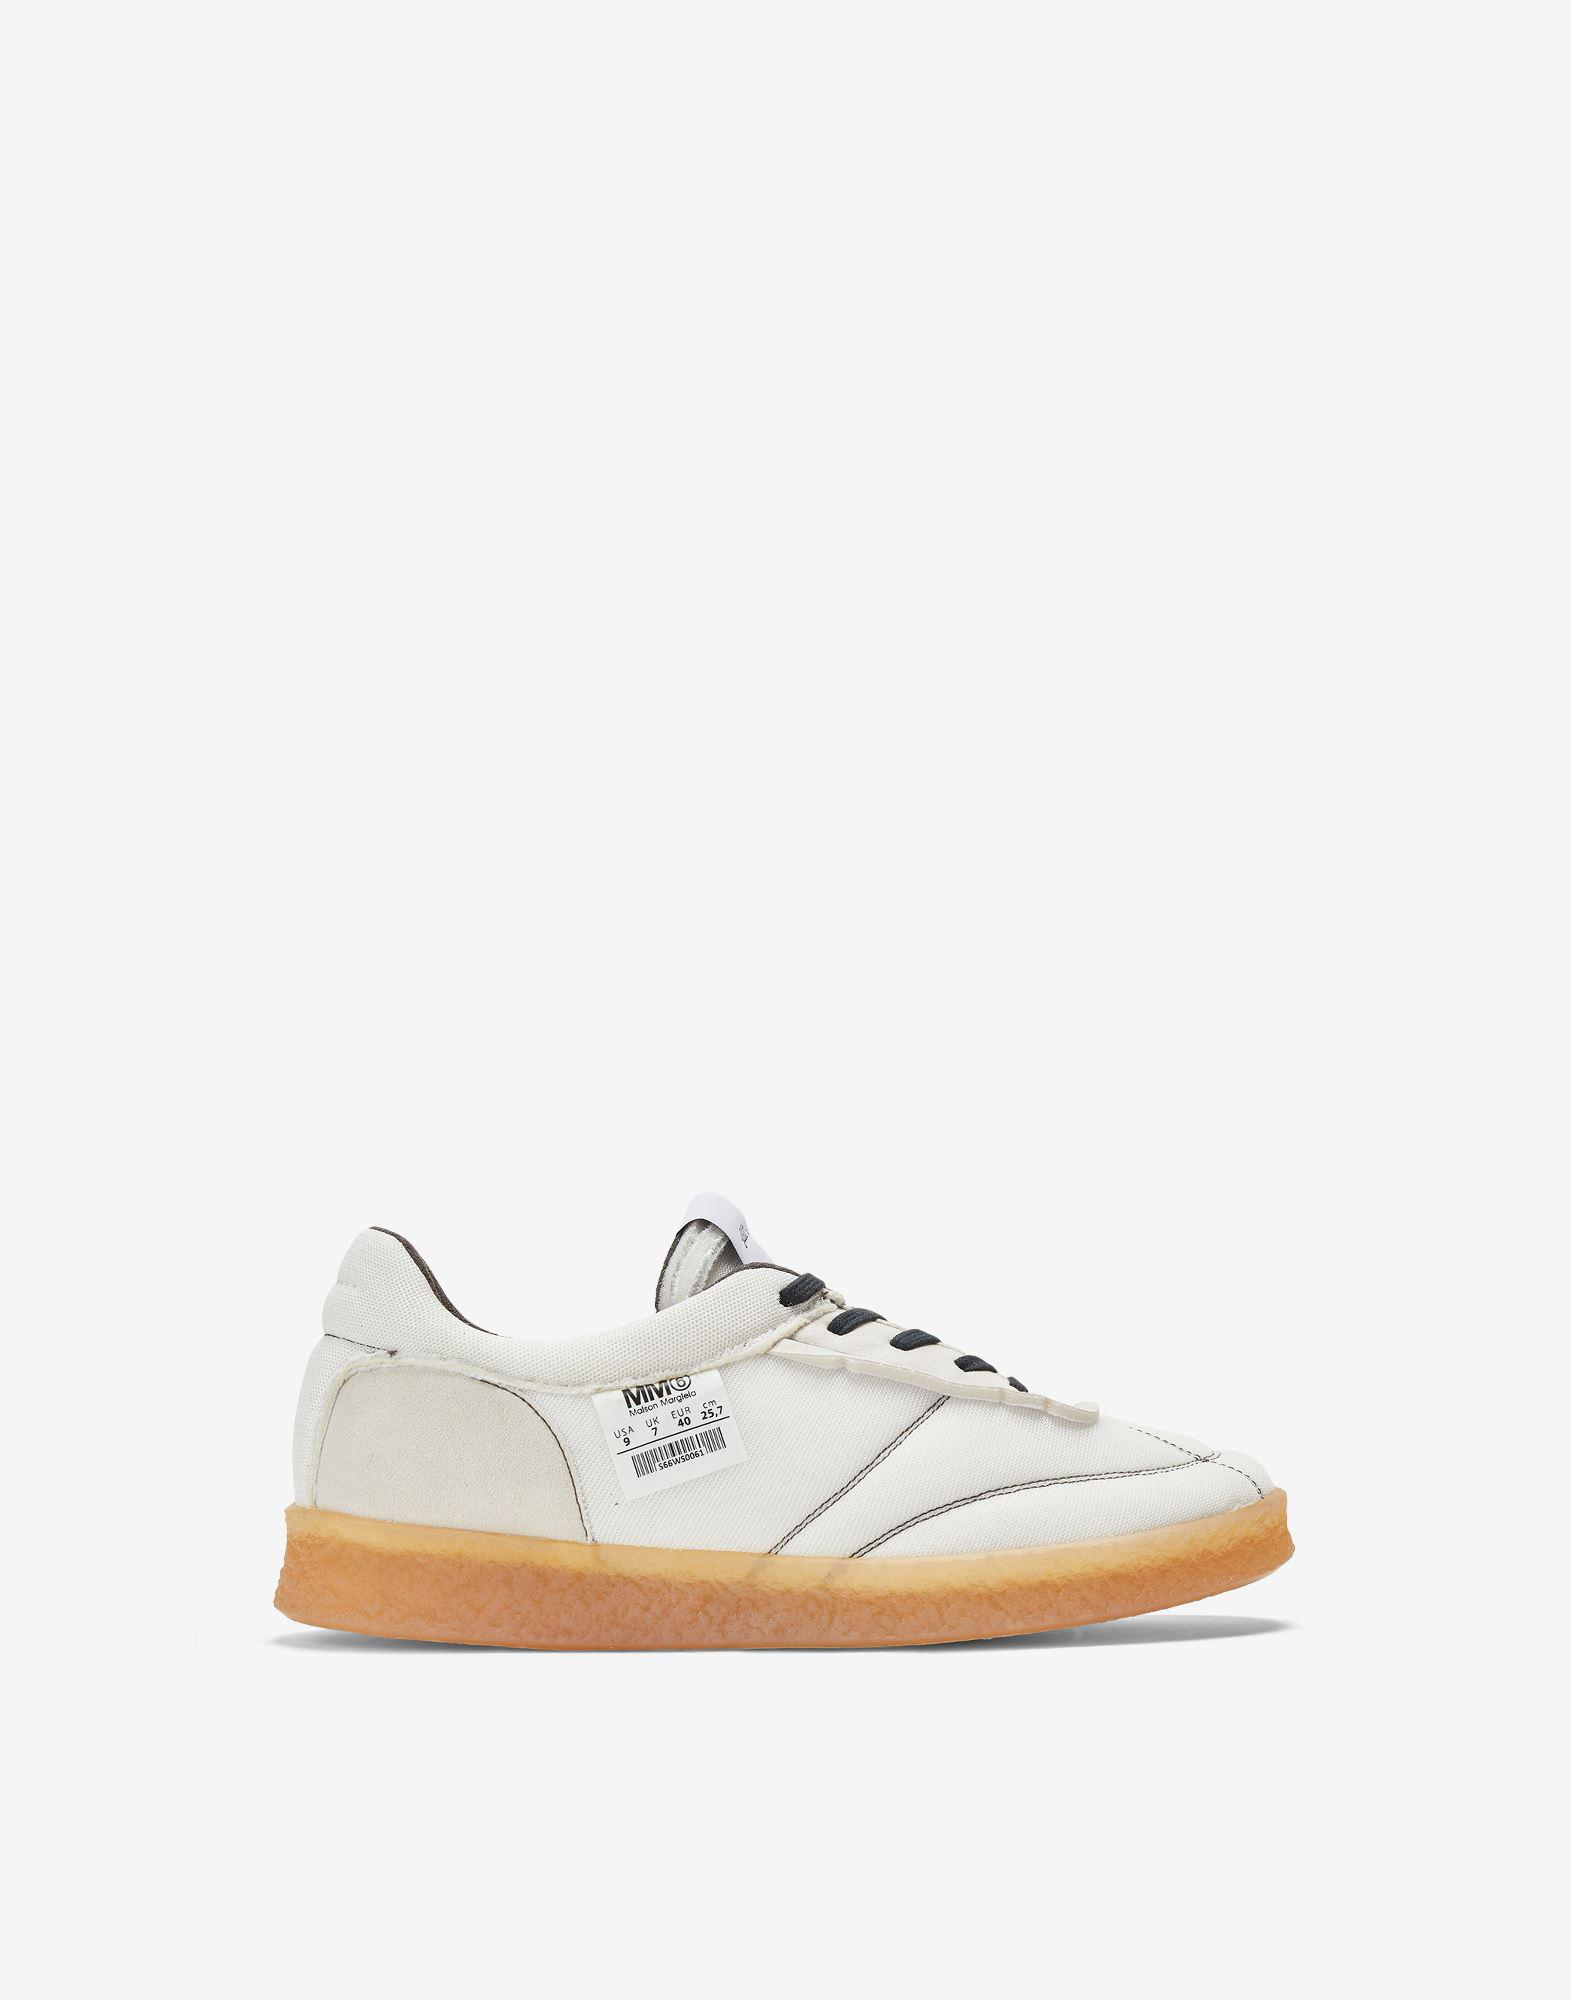 Inside out 6 court sneakers